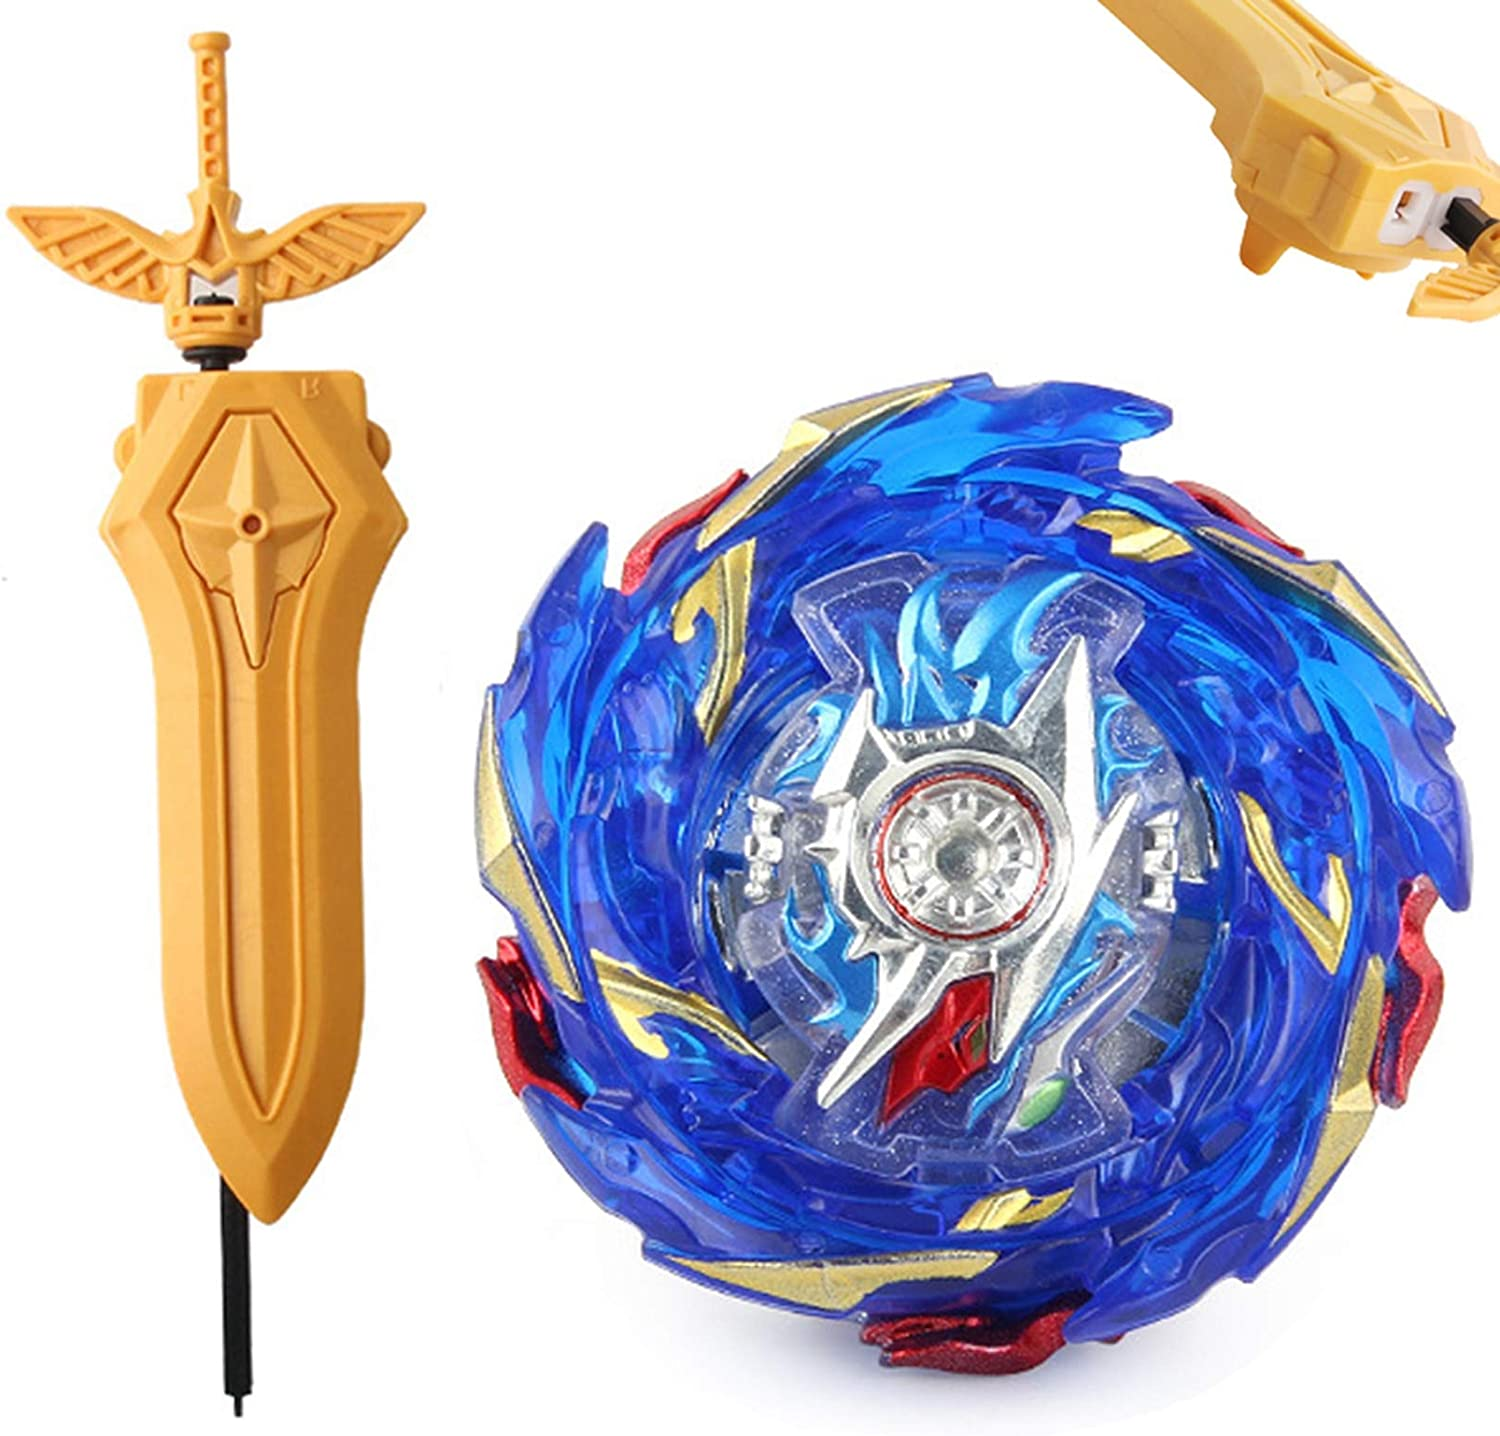 Battling Toys - Burst San Jose Mall SuperKing Sta Be super welcome Booster B-174 Volcano Helios